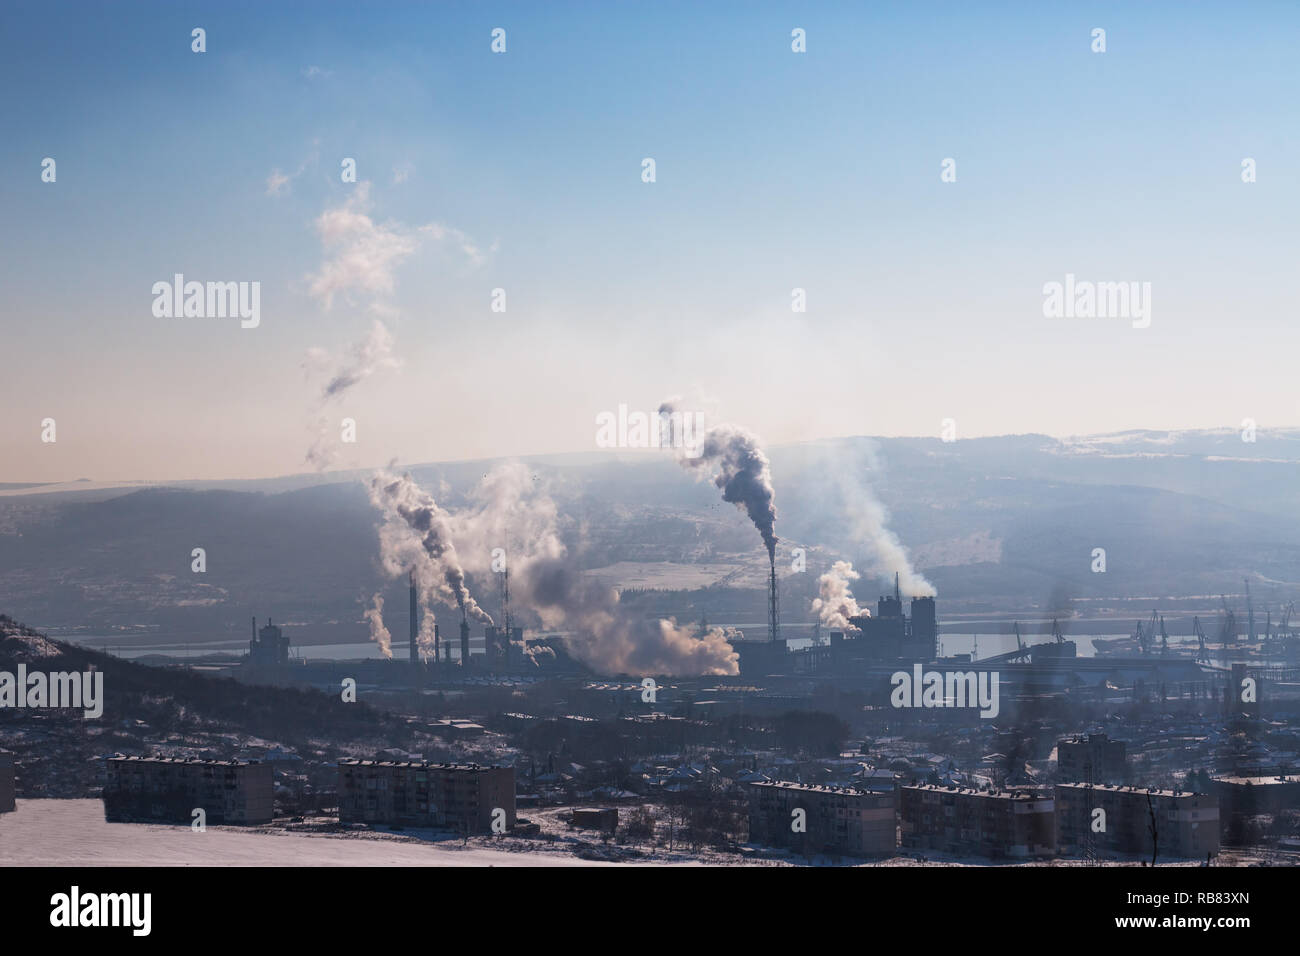 Chemical industry and working factory. Chimneys with smog in the sky. Air Pollution. - Stock Image